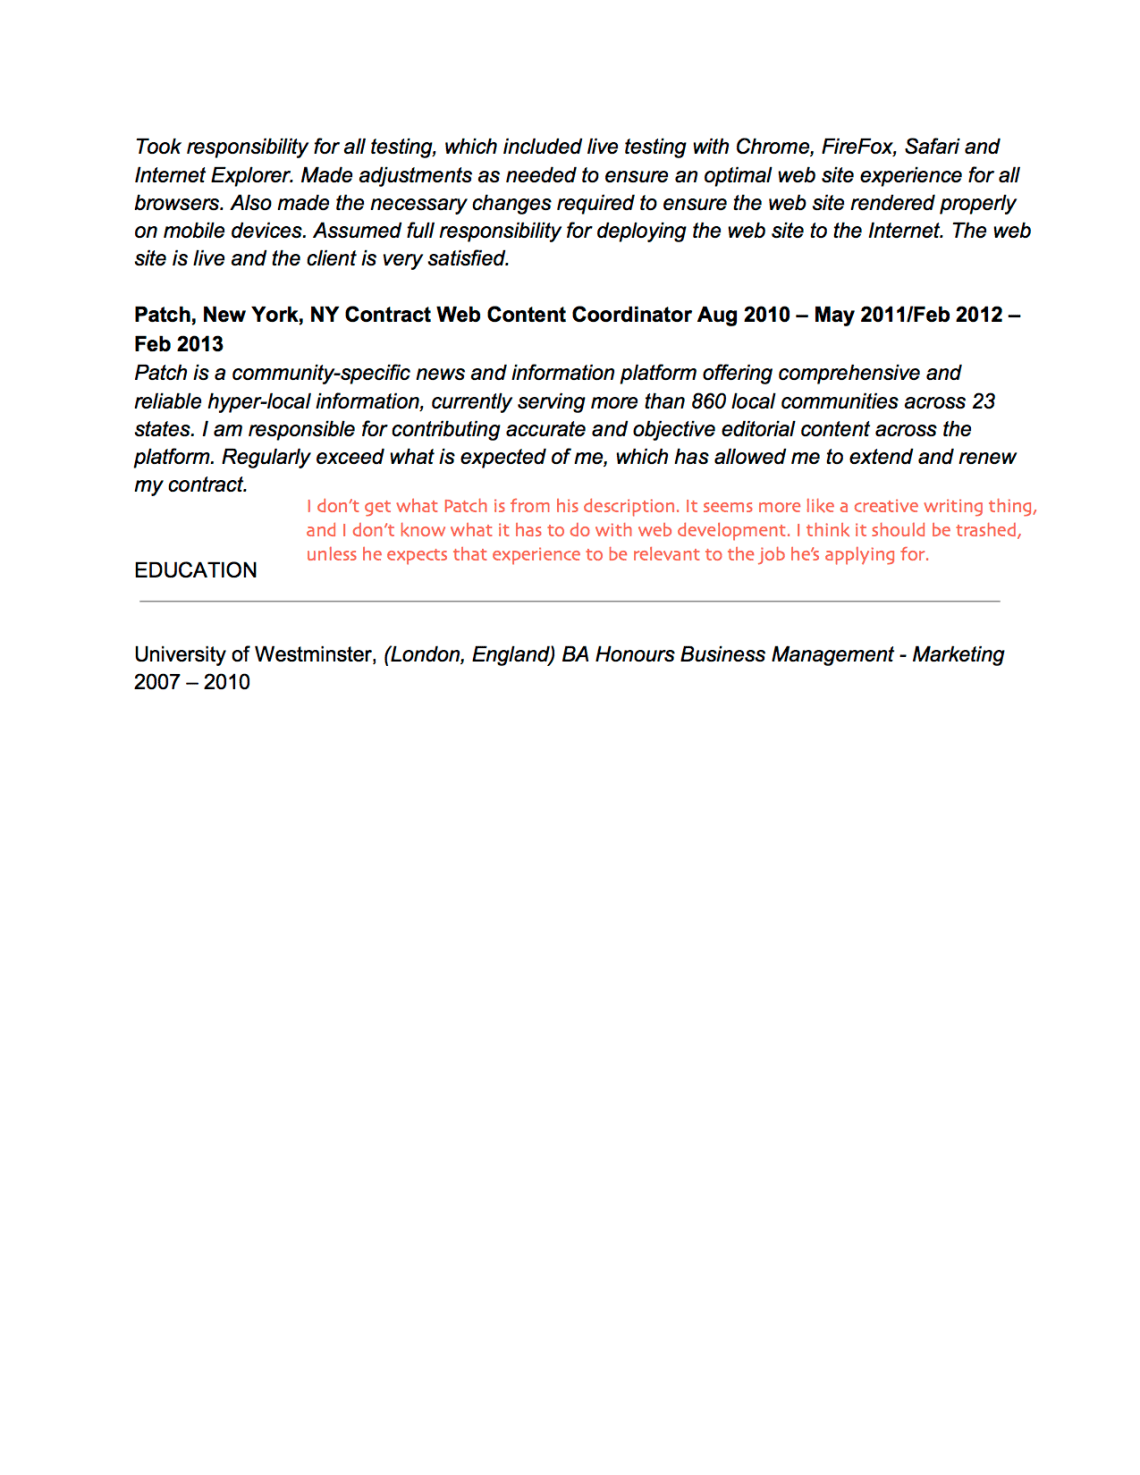 Sample Cover Letter For Entry Level Web Developer   Cover Letter